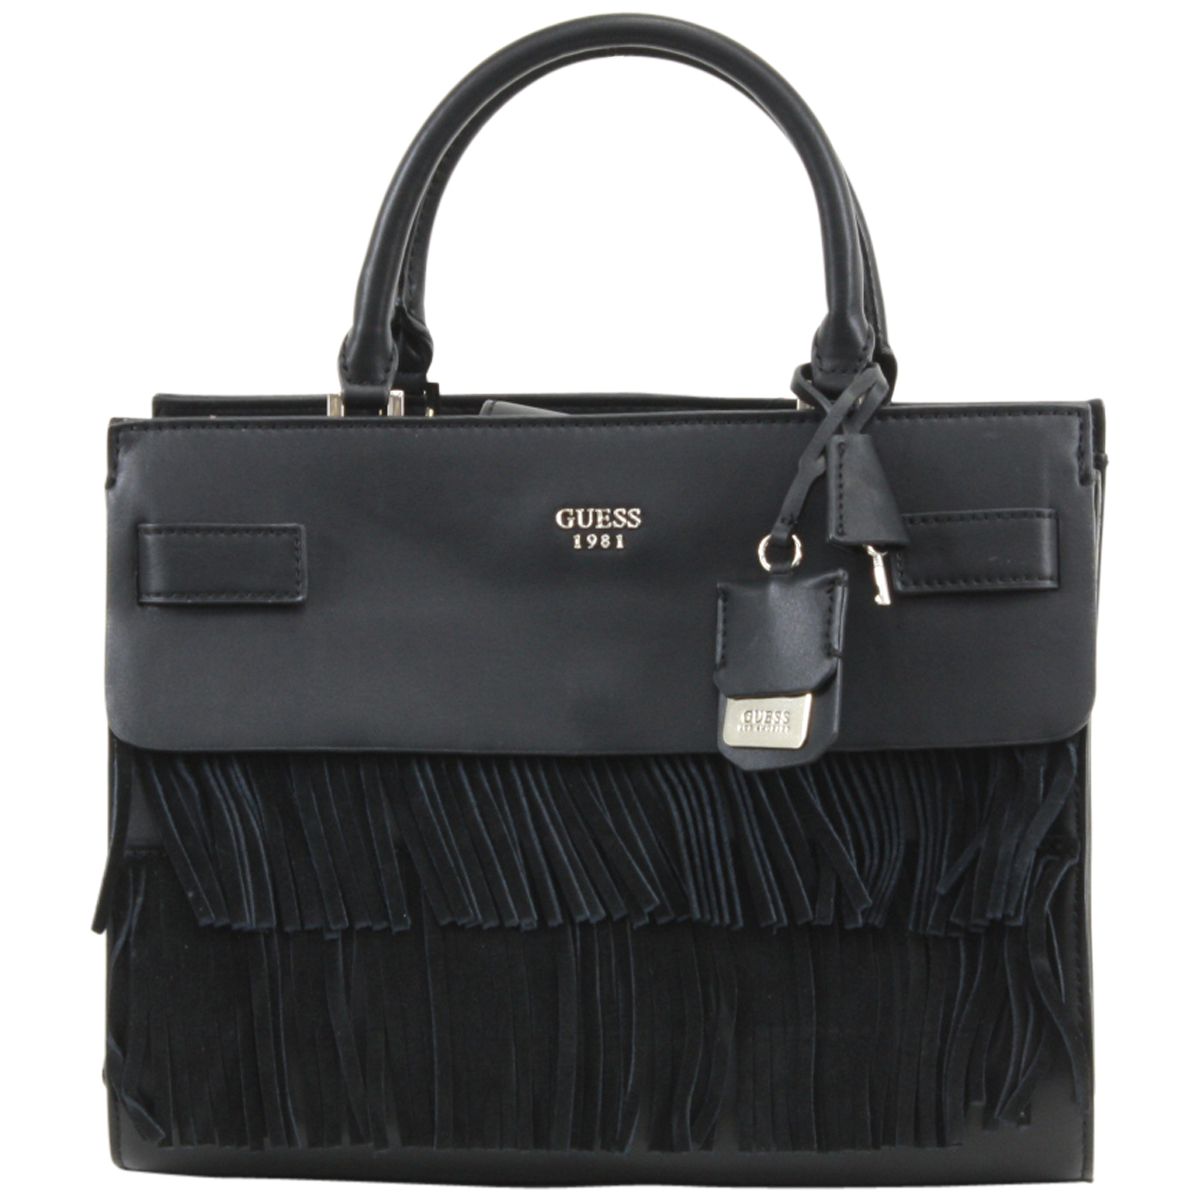 Details about Guess Women's Cate Black Pebbled Satchel Handbag